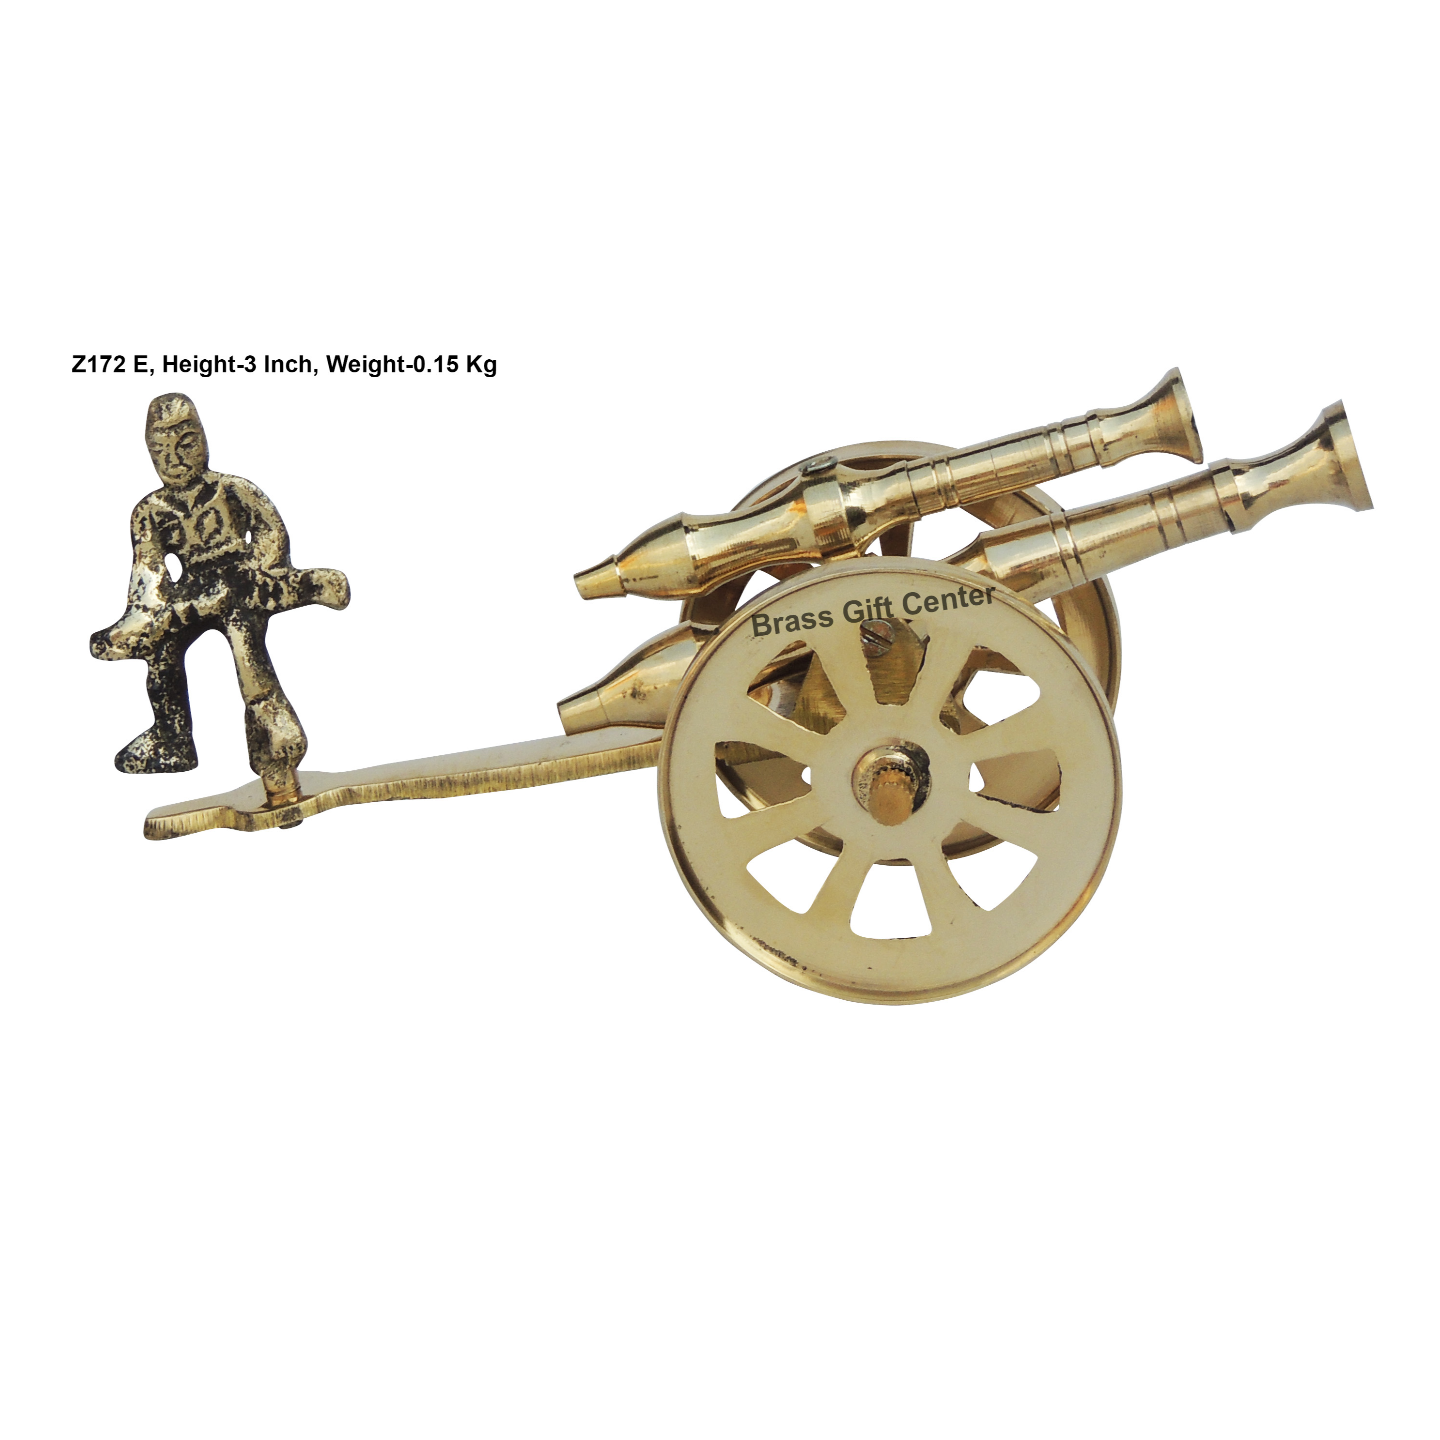 Brass Small Toop Cannon No. 7 - 6.5*2.3*3 Inch  (Z172 E)